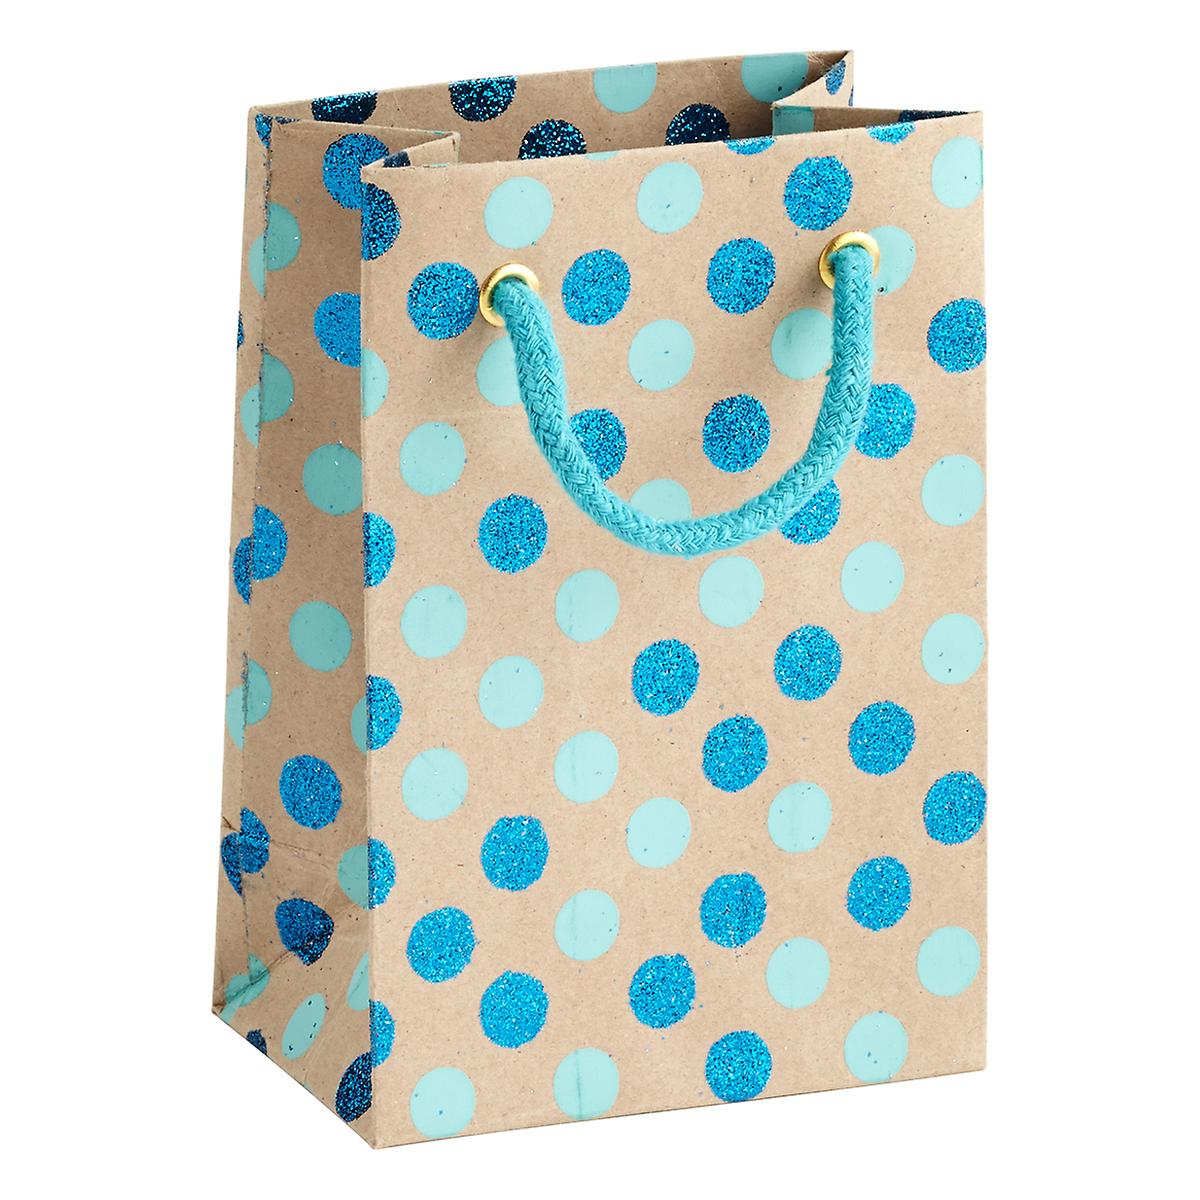 Vivid Wrap Small Blue Glitter Dots Recycled Gift Bag   The ...